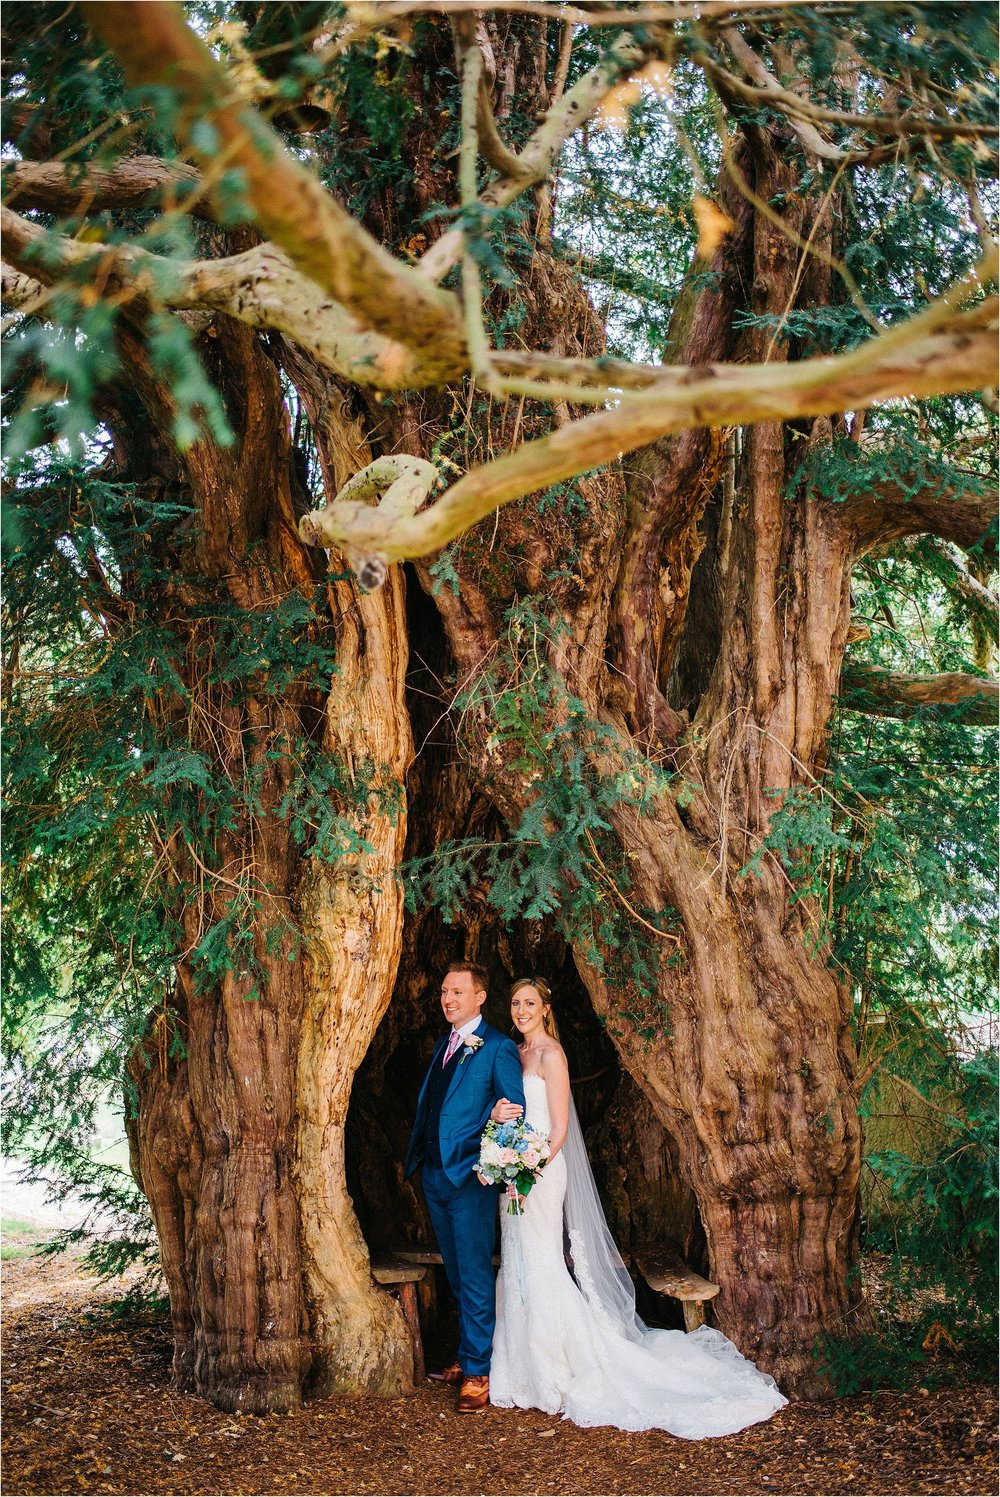 Herefordshire Wedding Photographer_0079.jpg